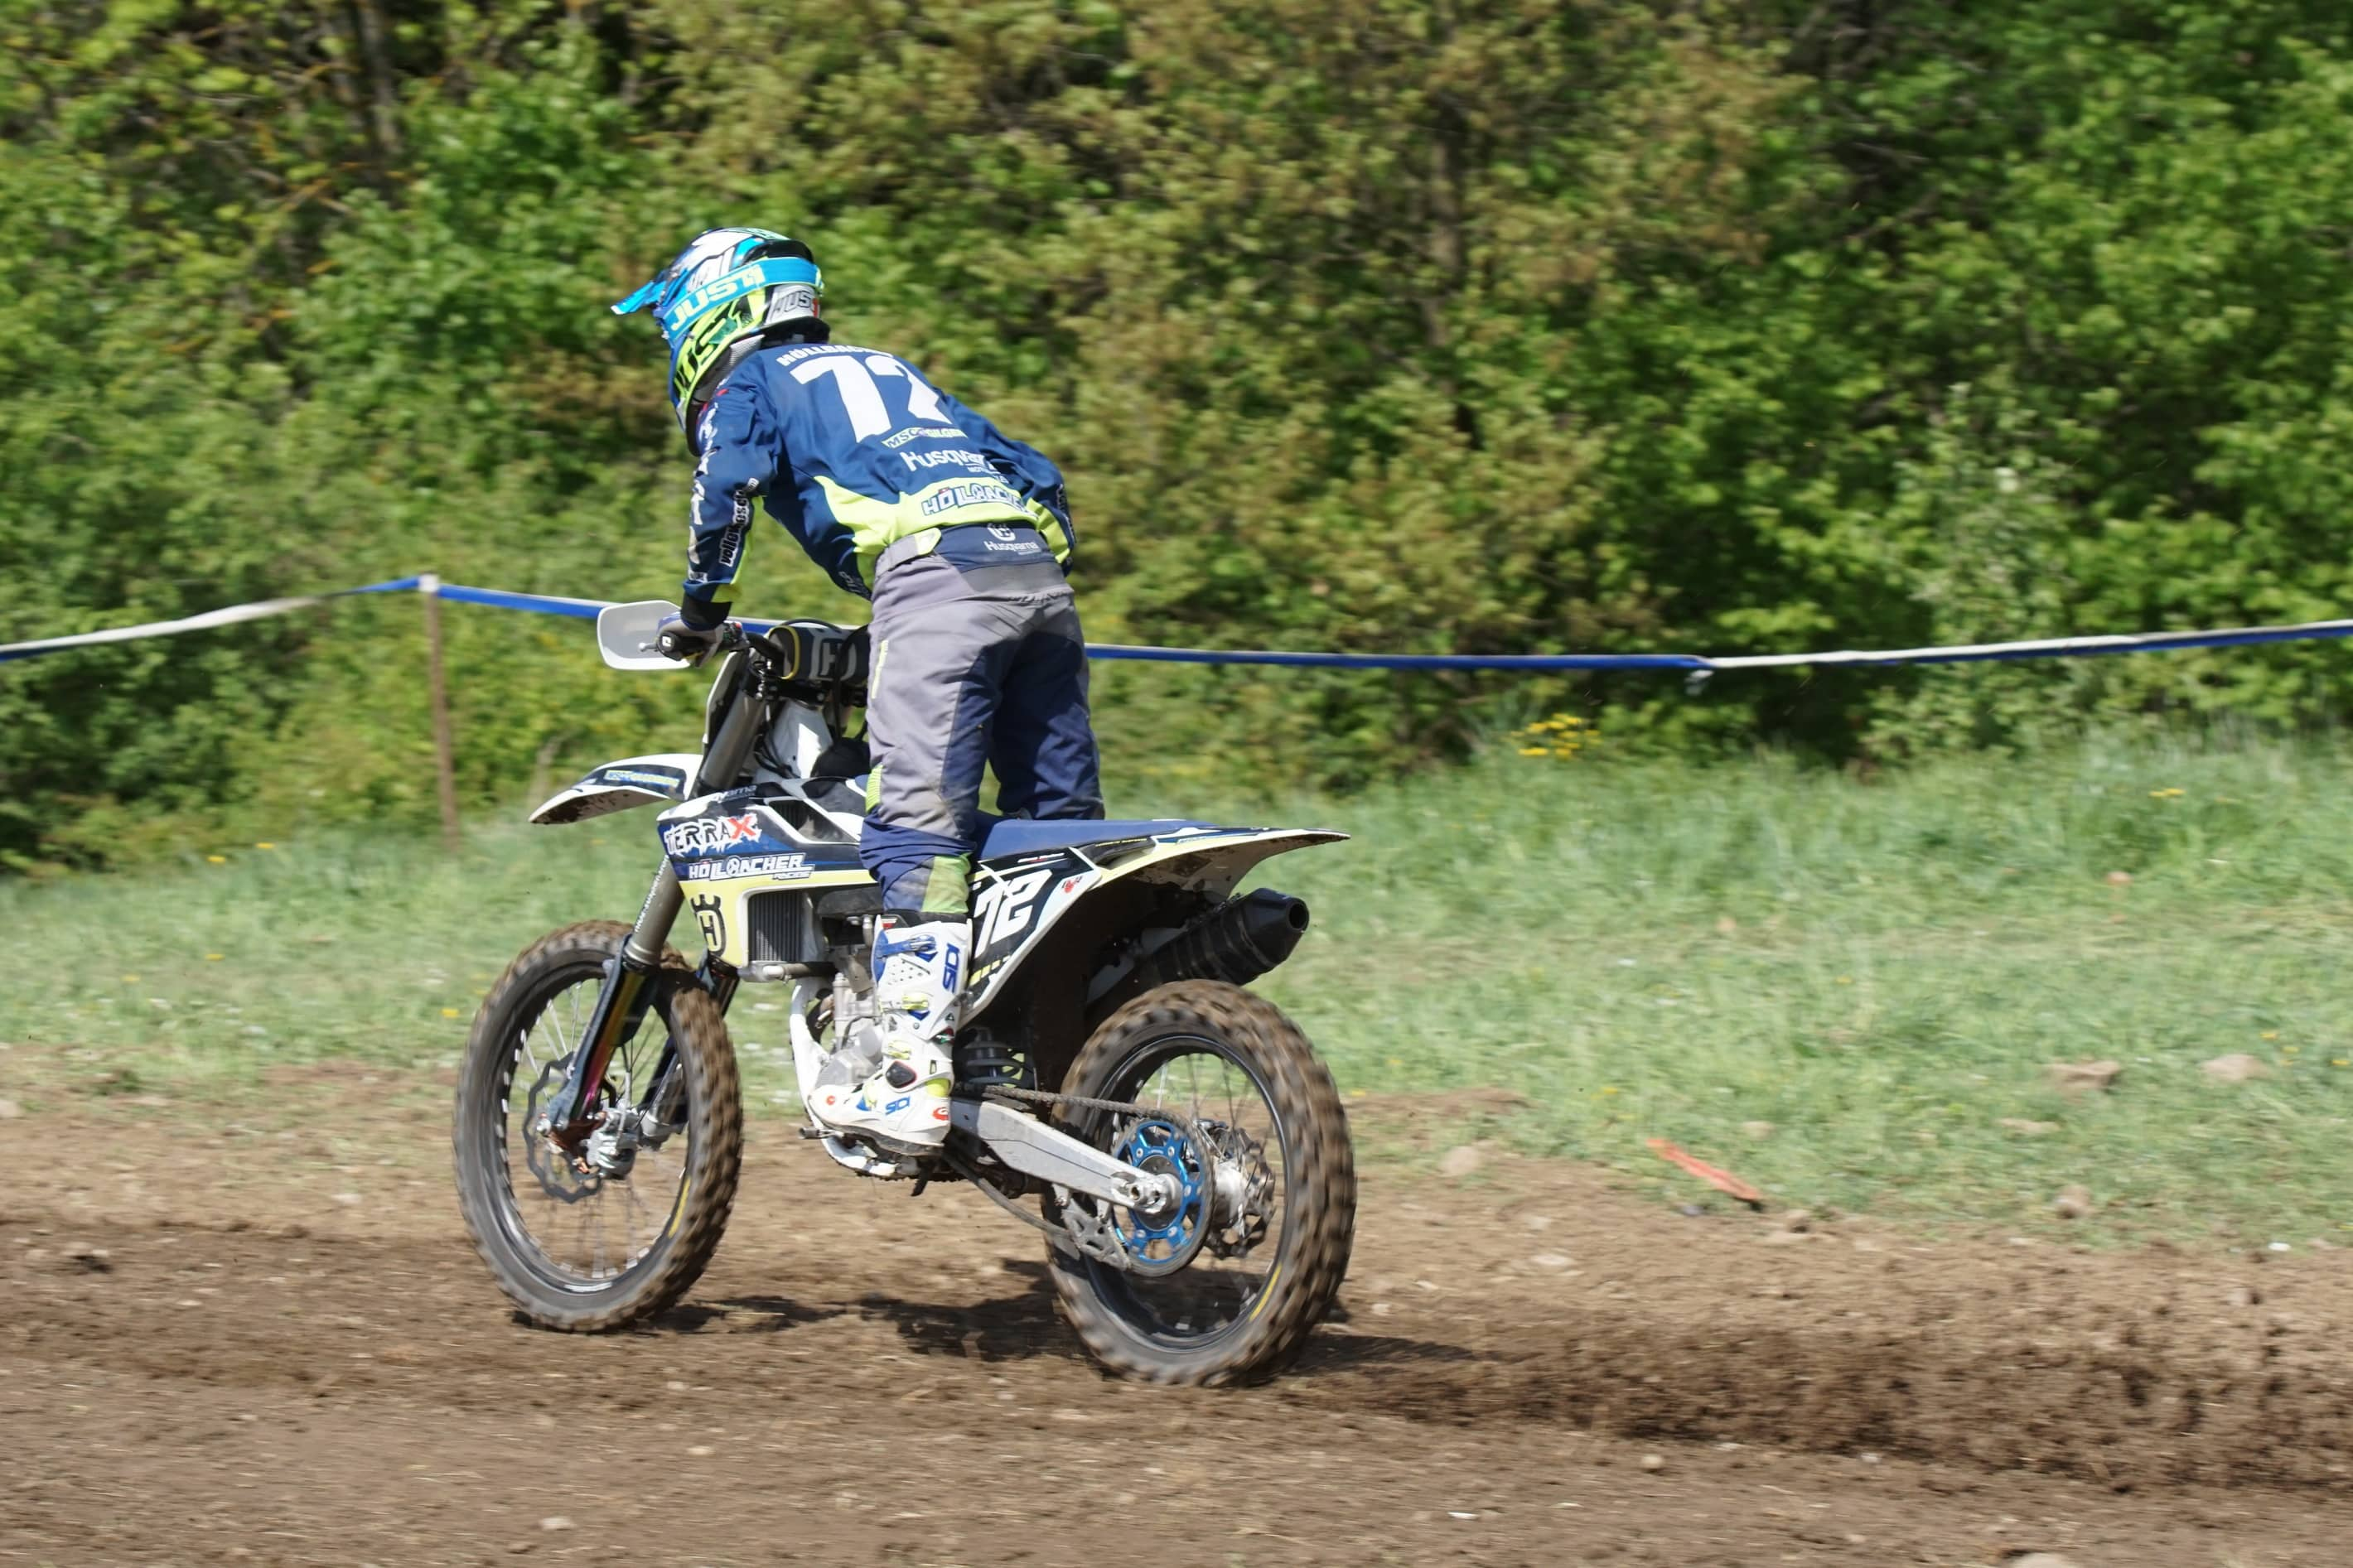 DSC 204_Moto Cross Sittendorf Teil1 am 29.04.2018